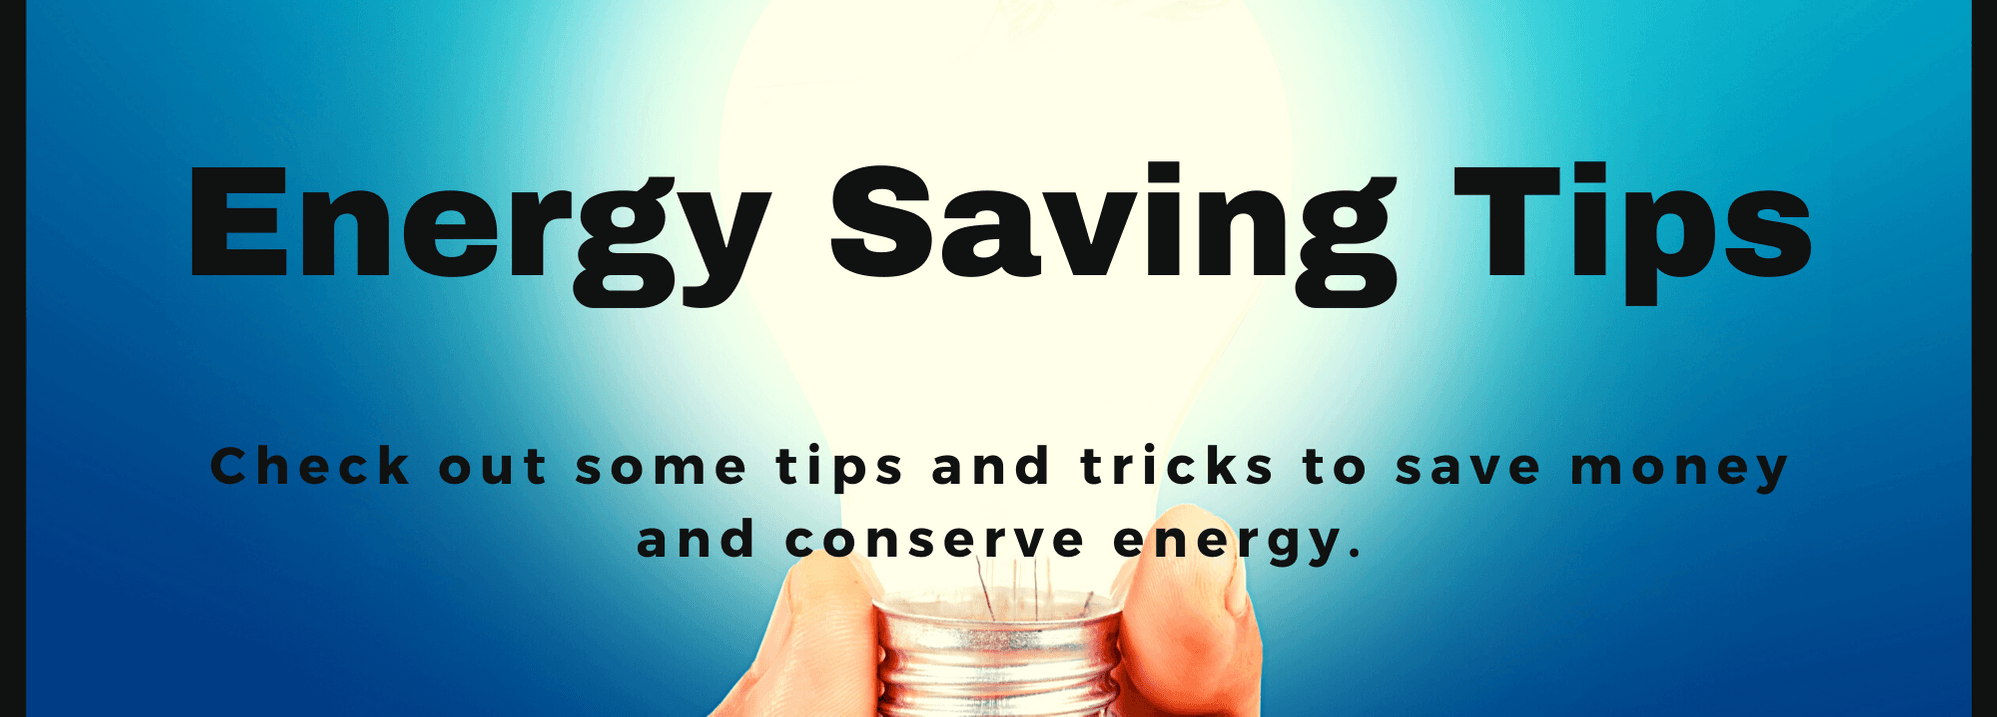 W. Electric Energy Saving Tips - website banner